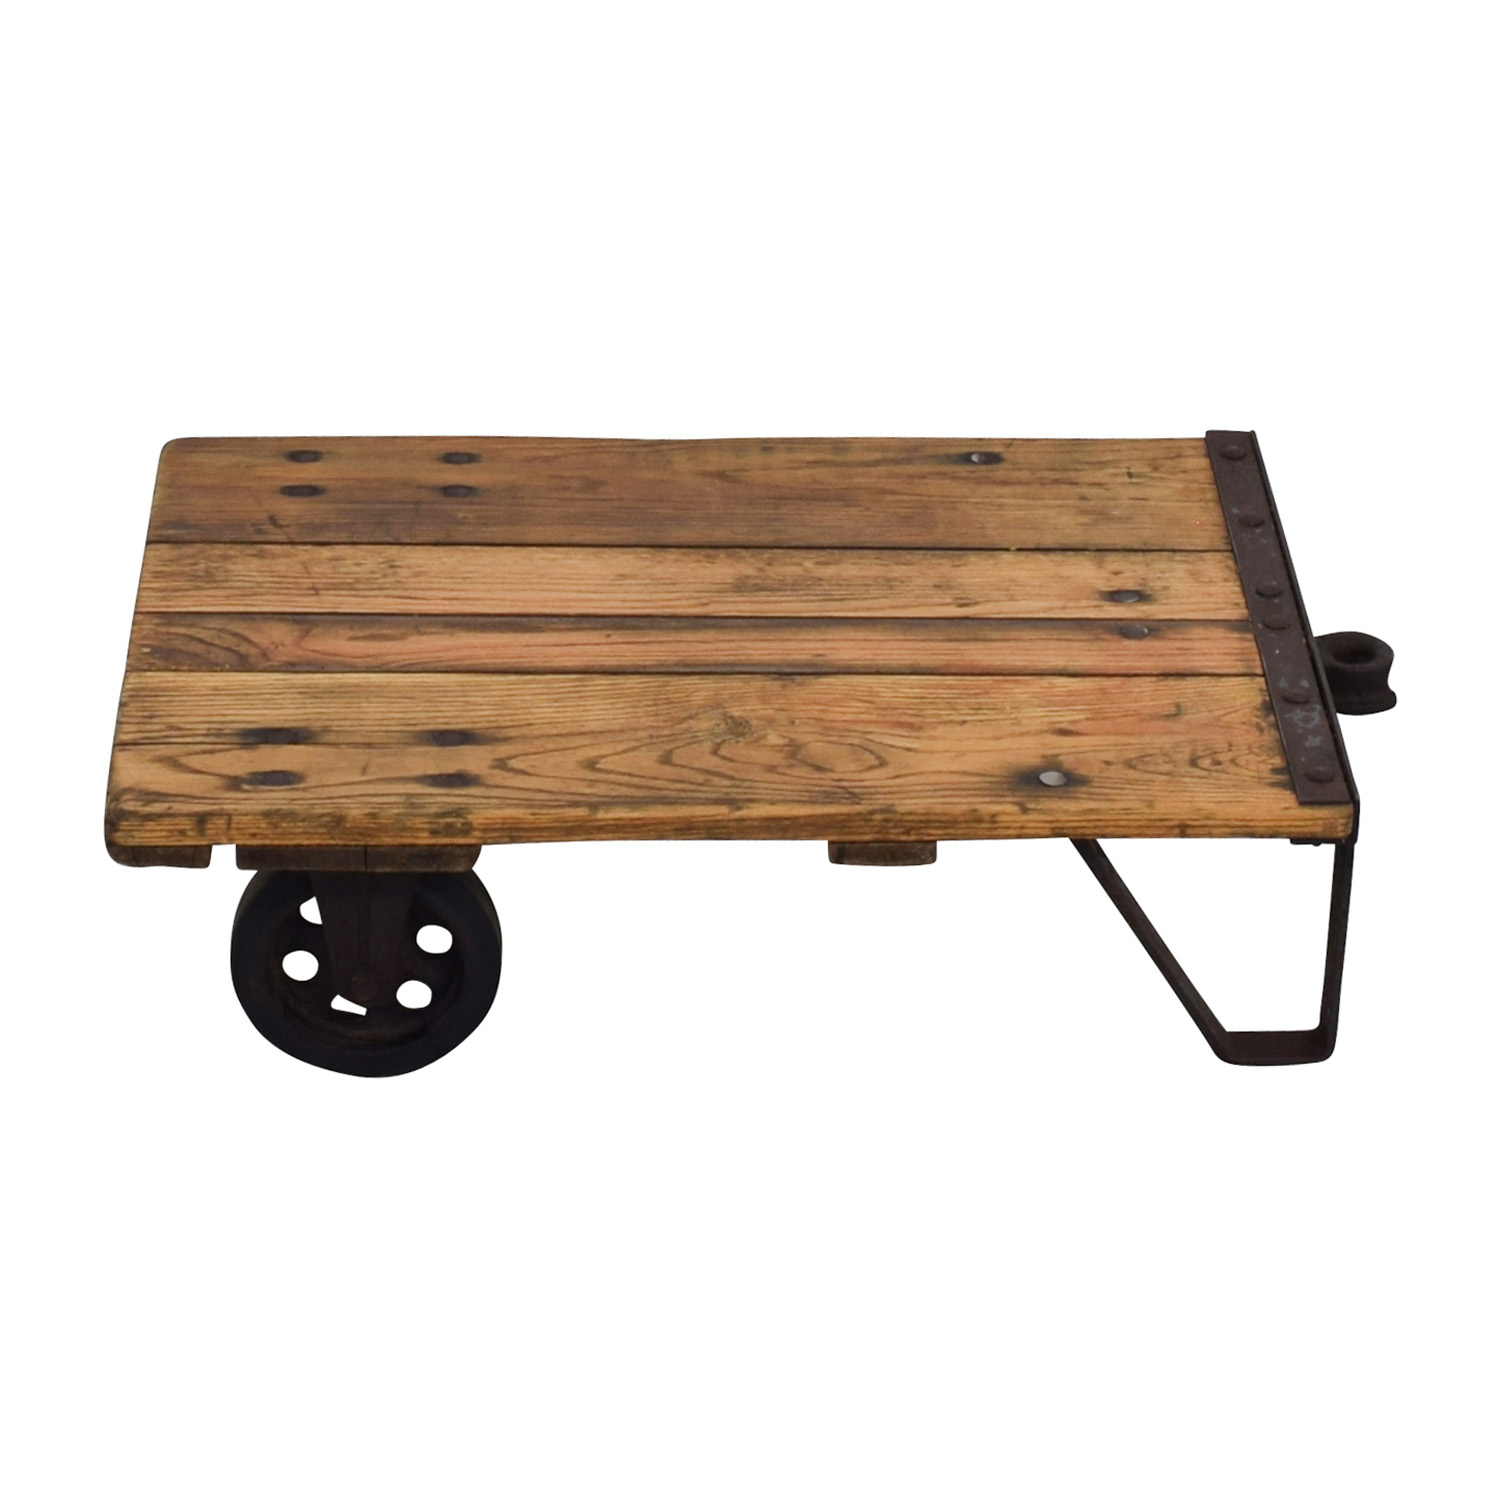 Thomas Truck & Caster Co Thomas Truck & Caster Co Restored Industrial Coffee Table on sale